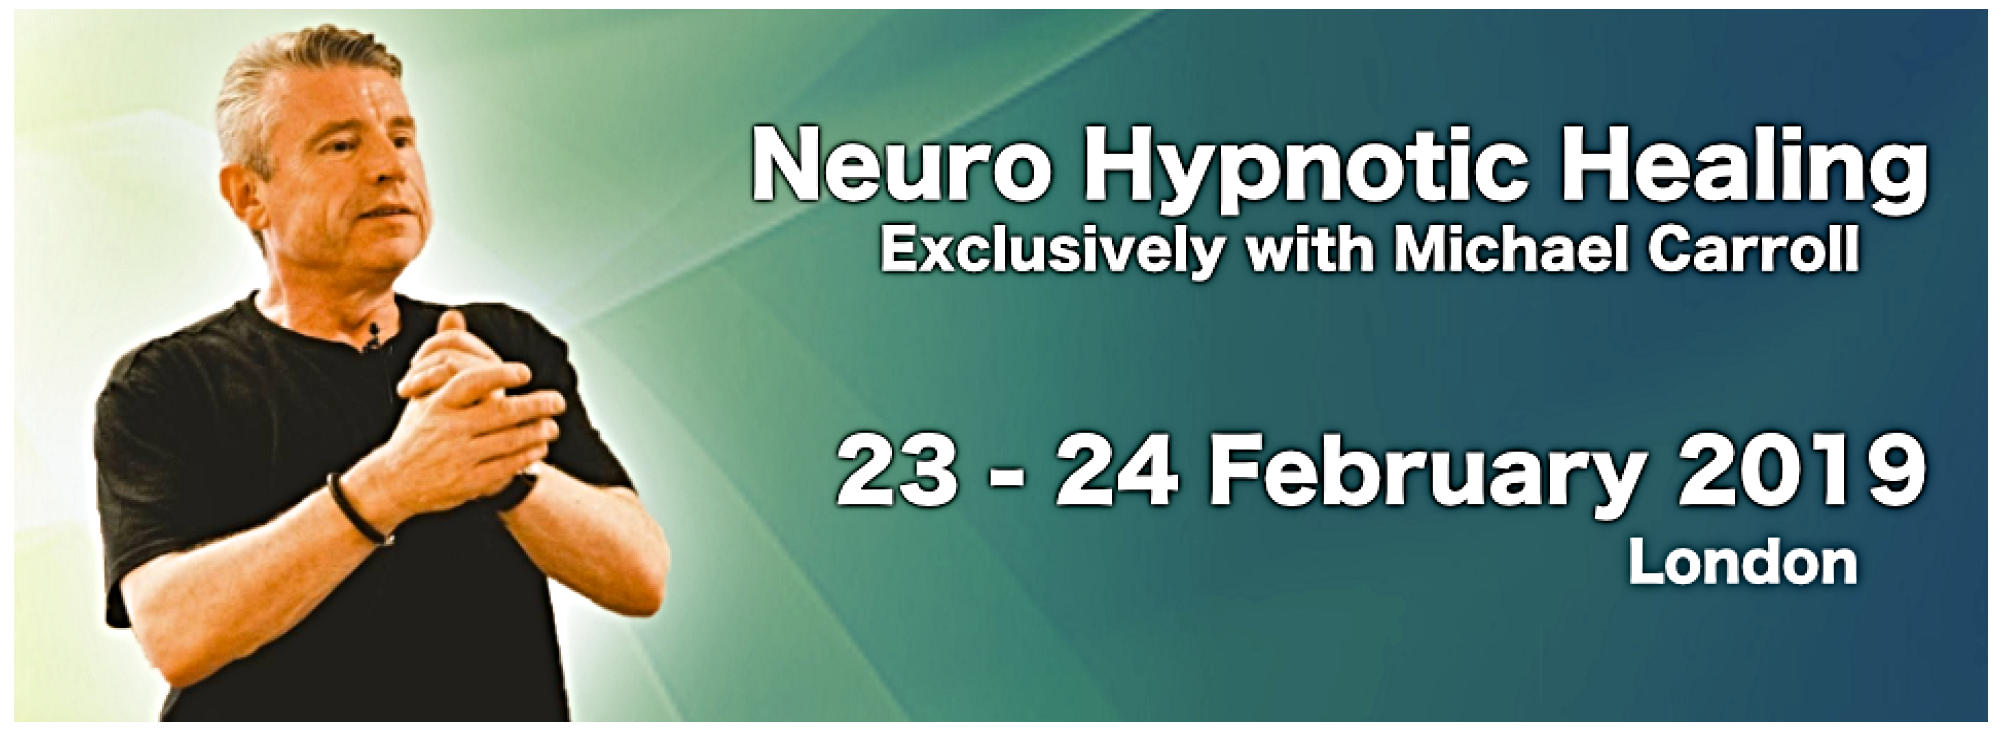 Neuro Hypnotic Healing (London)